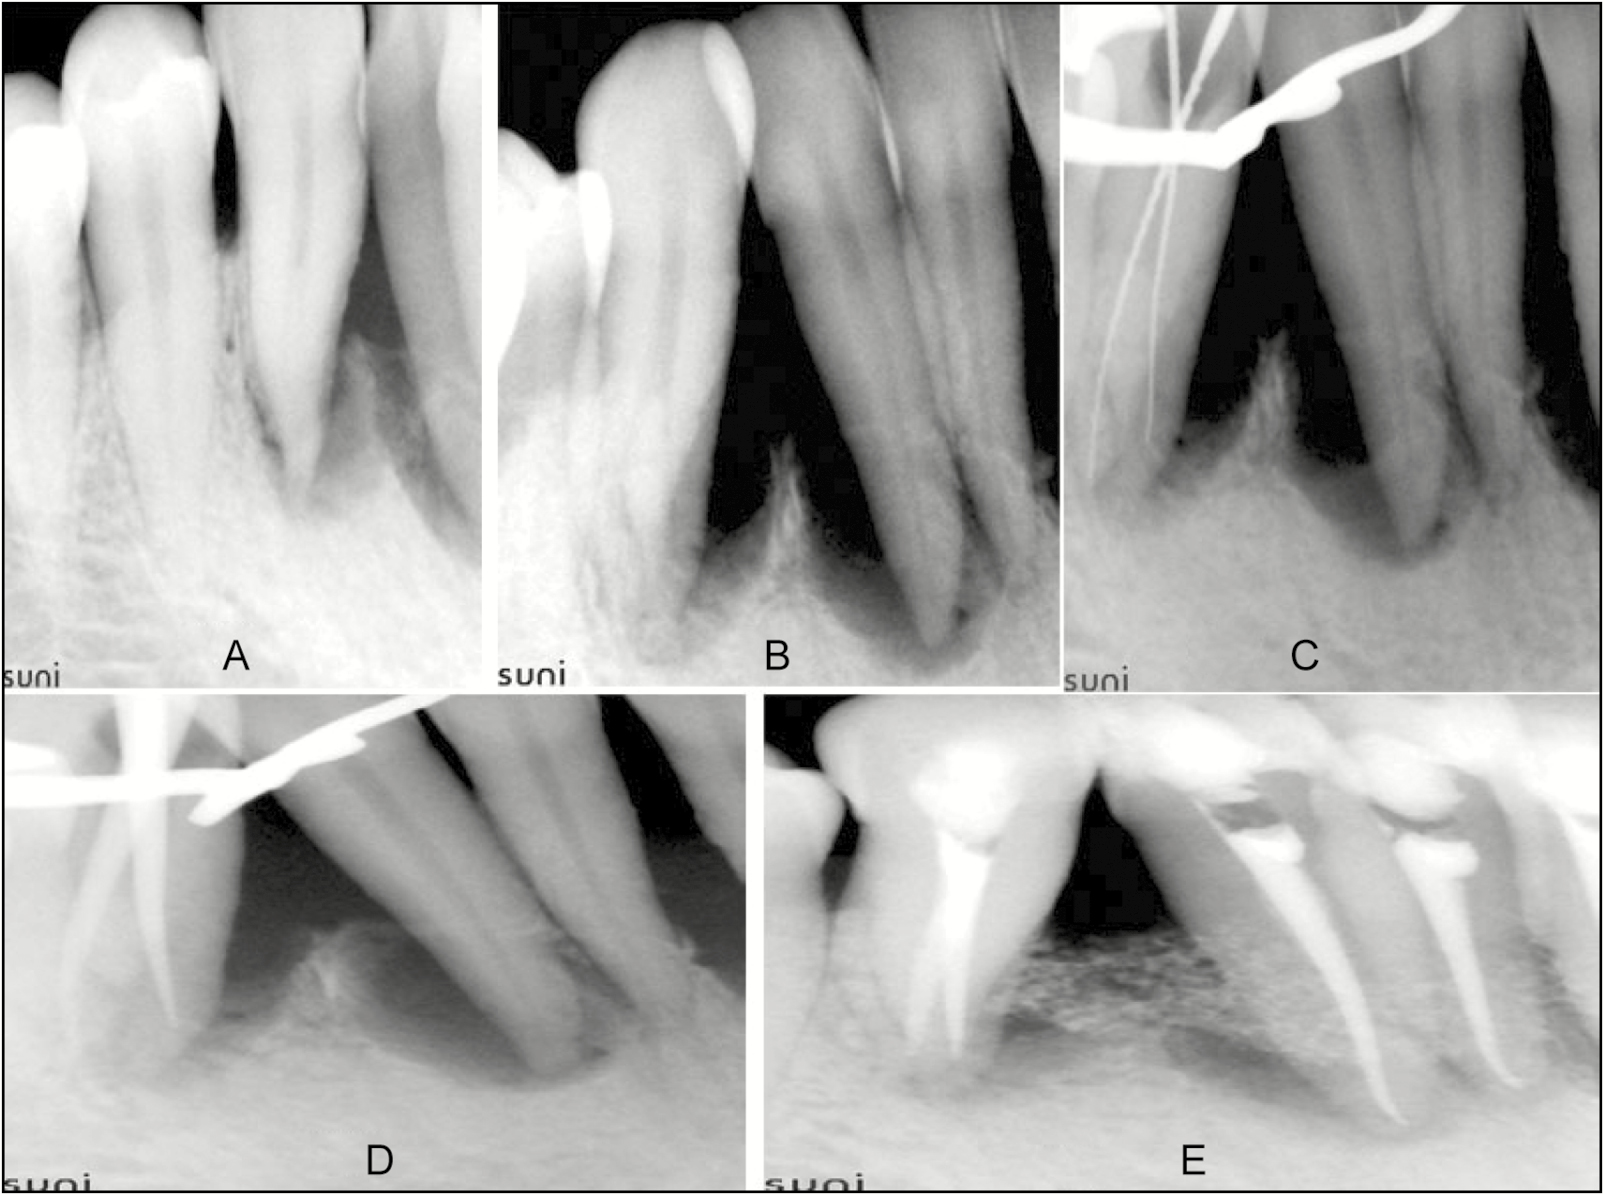 Figure 2: (A) Intraoral periapical radiograph of 27. (B) Angulated radiograph of 27. (C) Working length radiograph of 27. (D) Radiograph showing master cones in 27. (E) Radiograph after 6 months